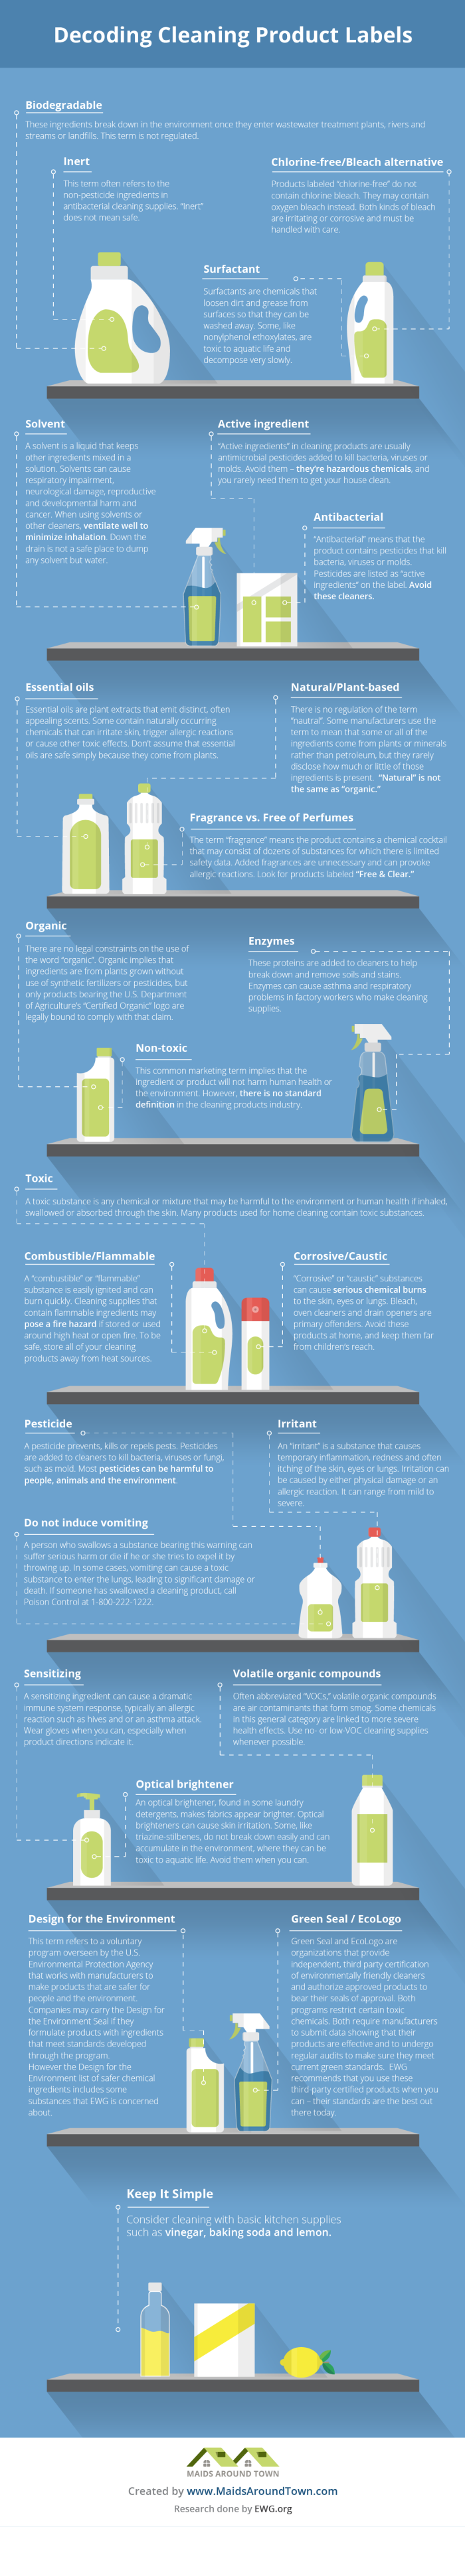 Decoding Cleaning Product Labels